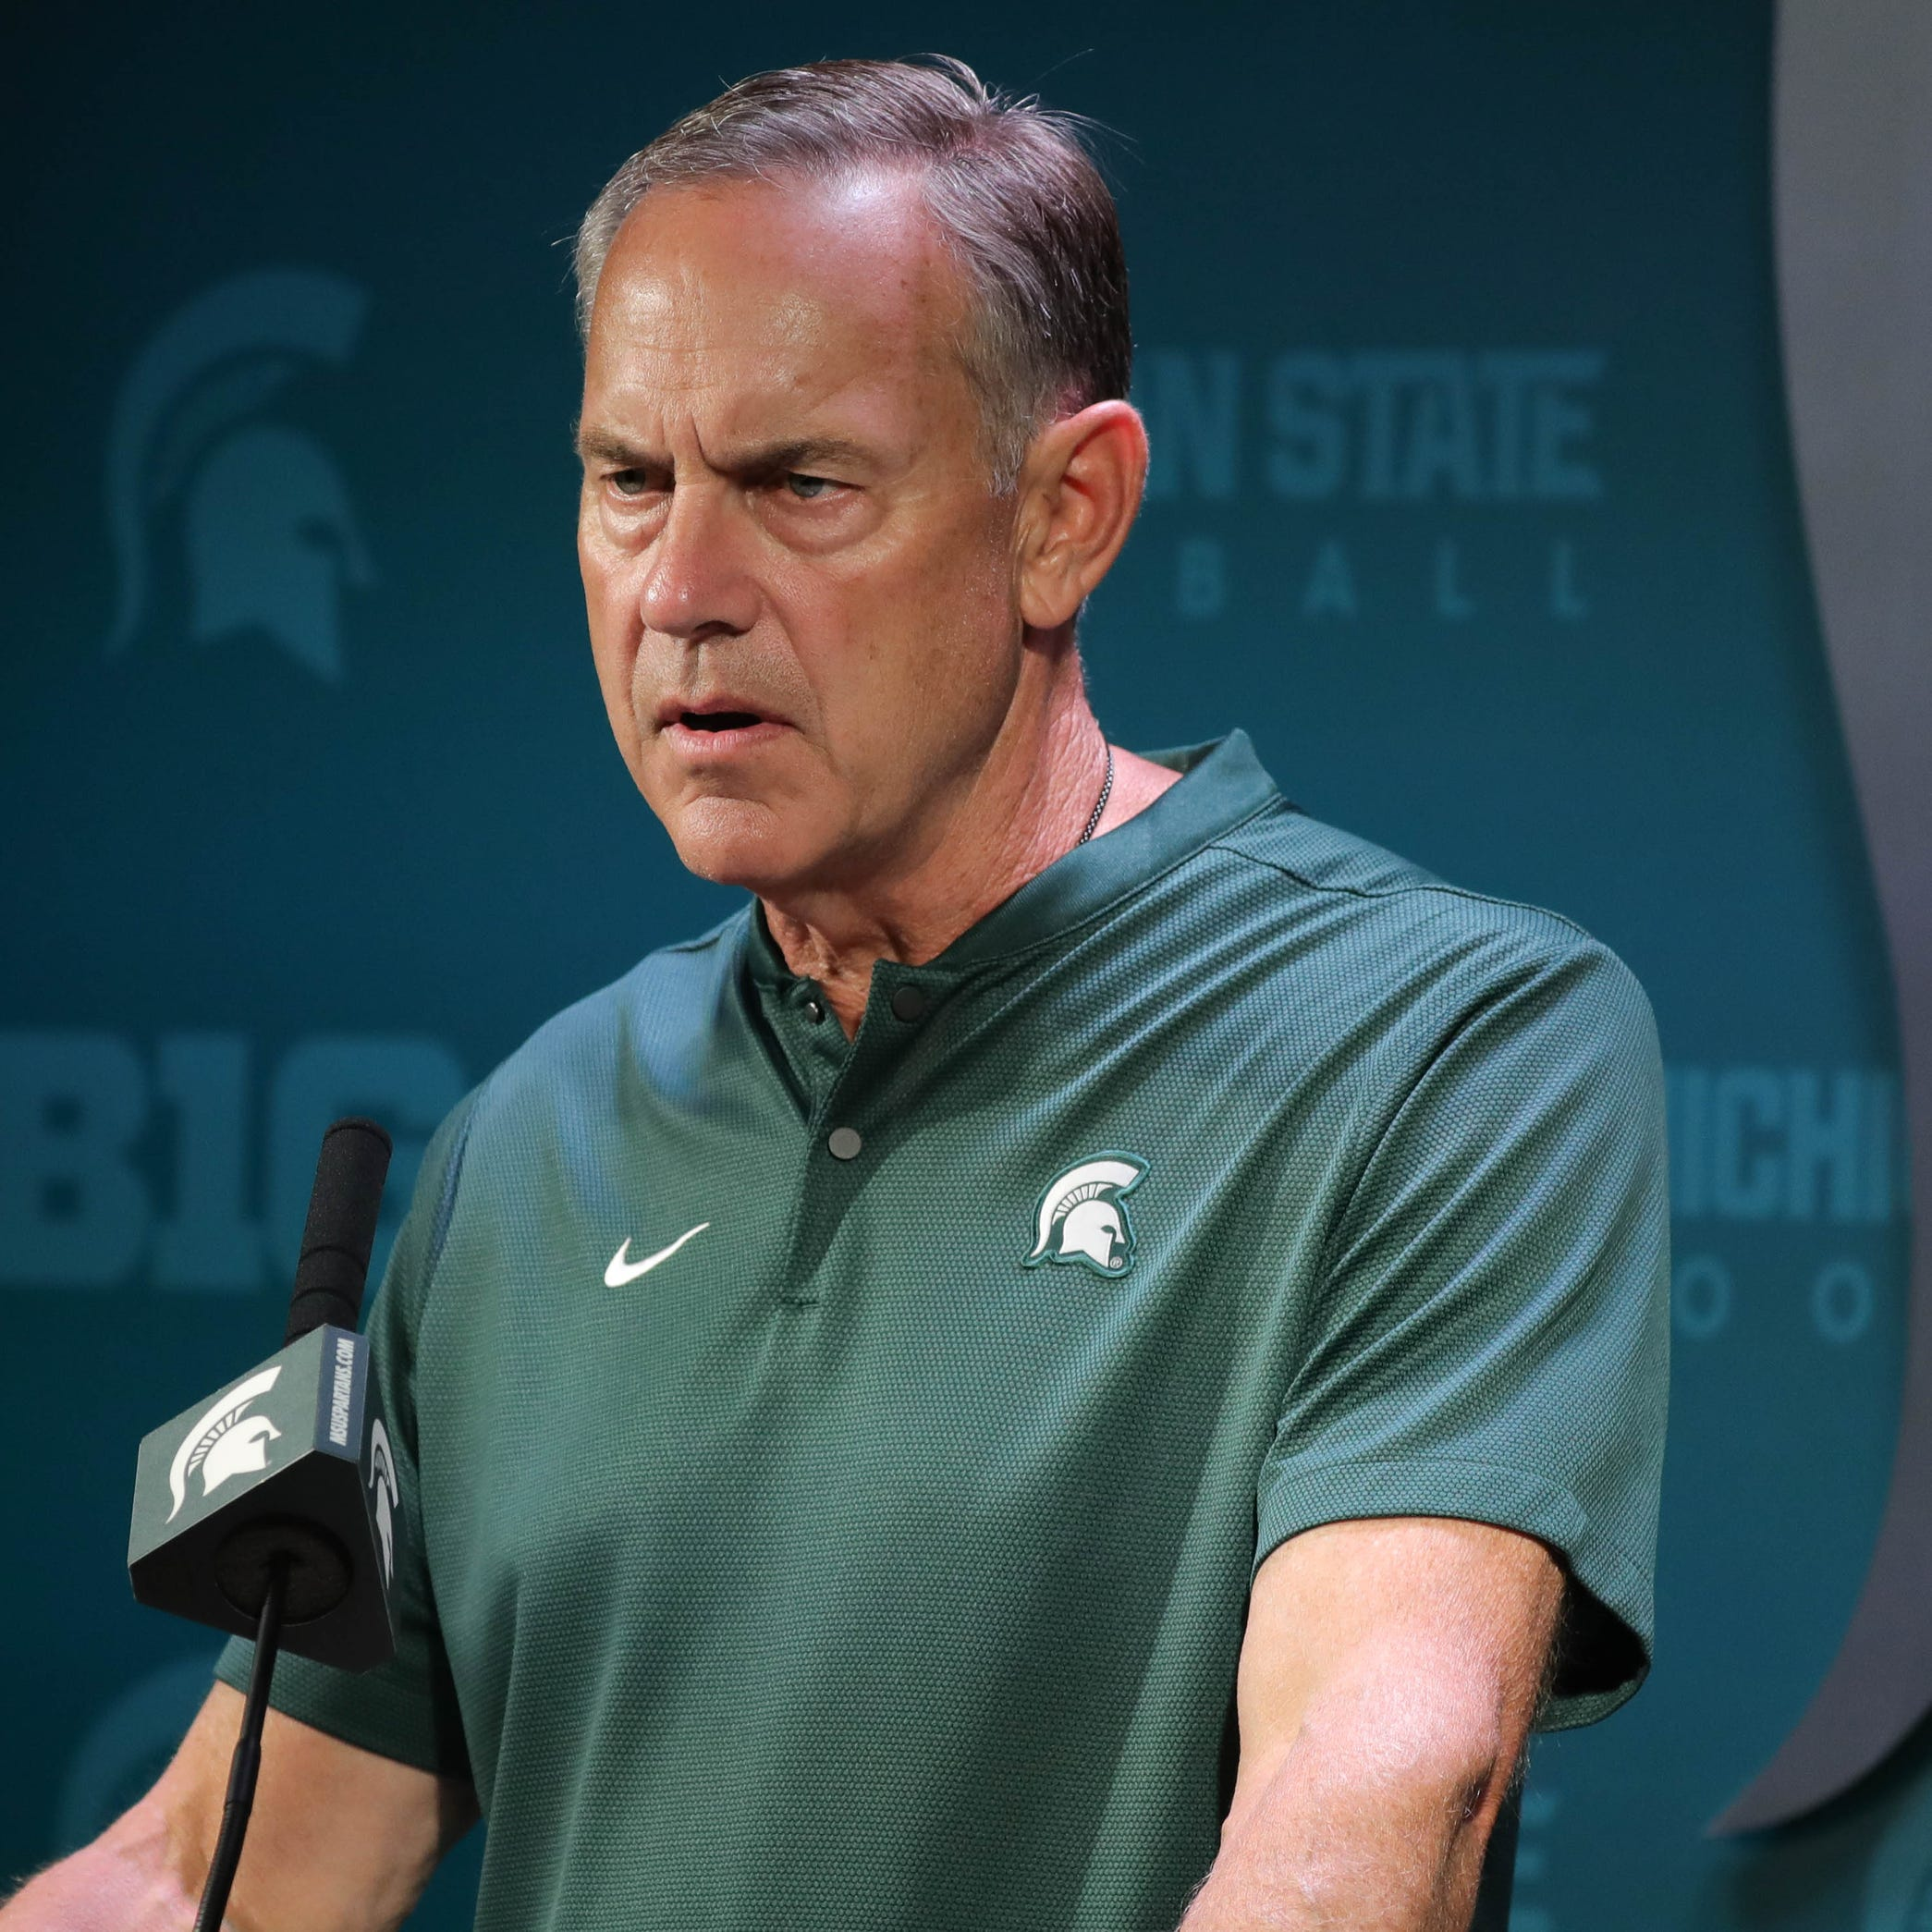 Michigan State football's Mark Dantonio news conference: Live updates